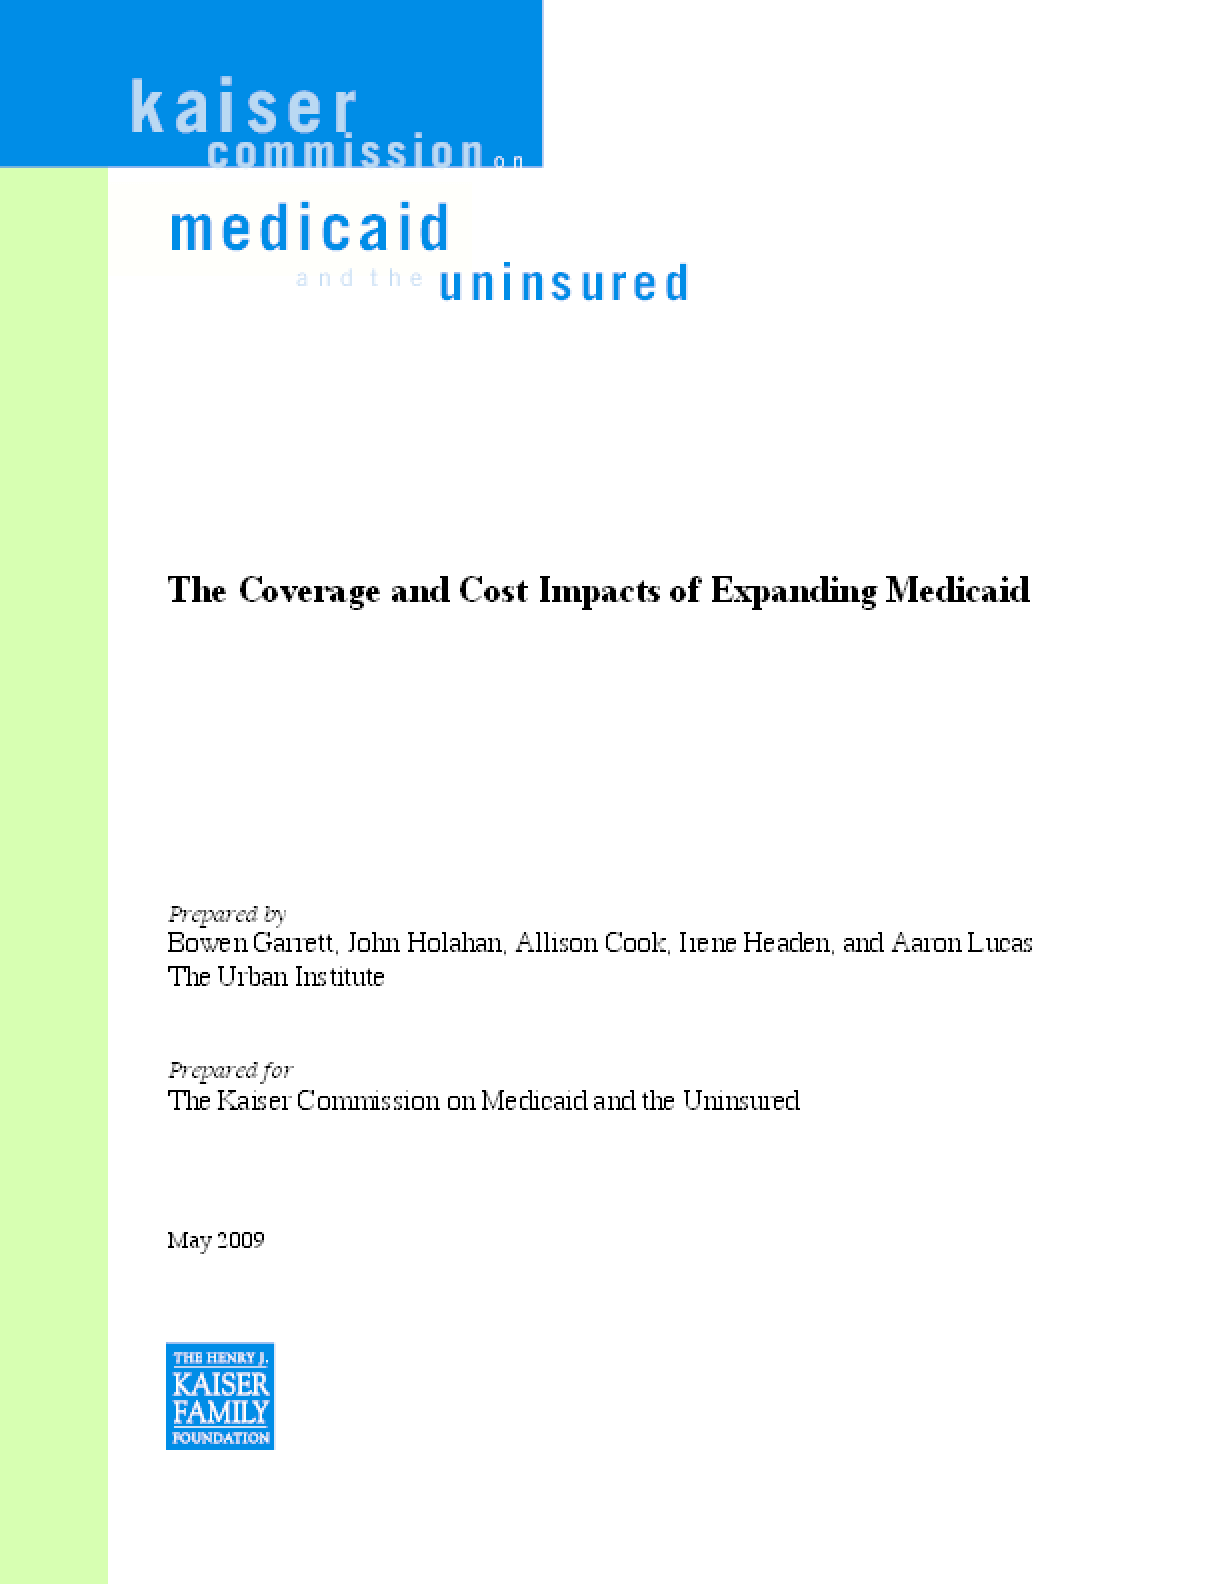 The Coverage and Cost Impacts of Expanding Medicaid